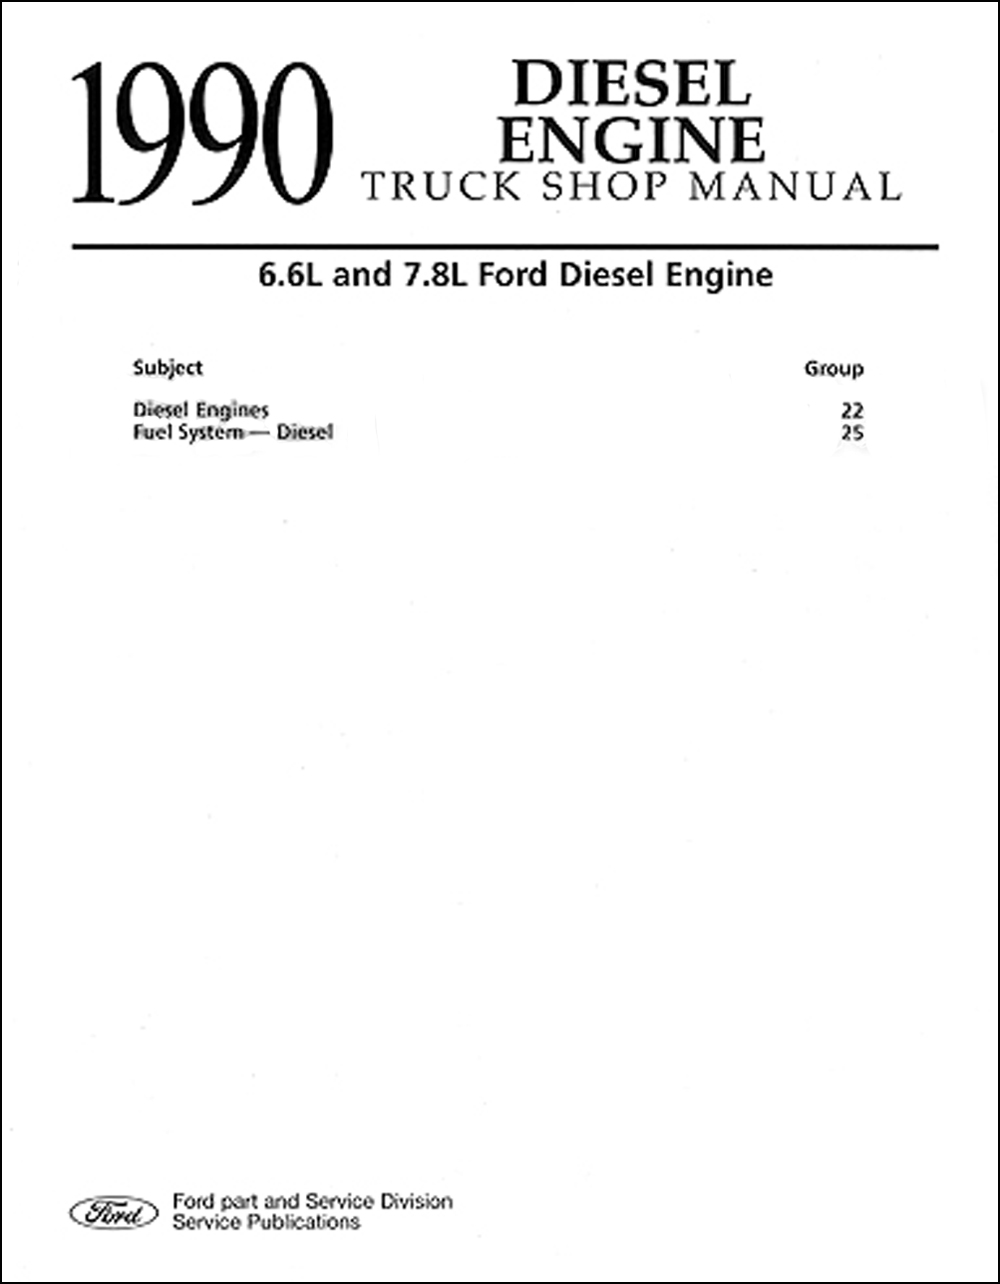 85 Ford F700 Shop Manual 362 Peterbilt Wiring Diagrams Pdf Array 1990 Truck 6 And 7 8 Diesel Engine Repair Rh